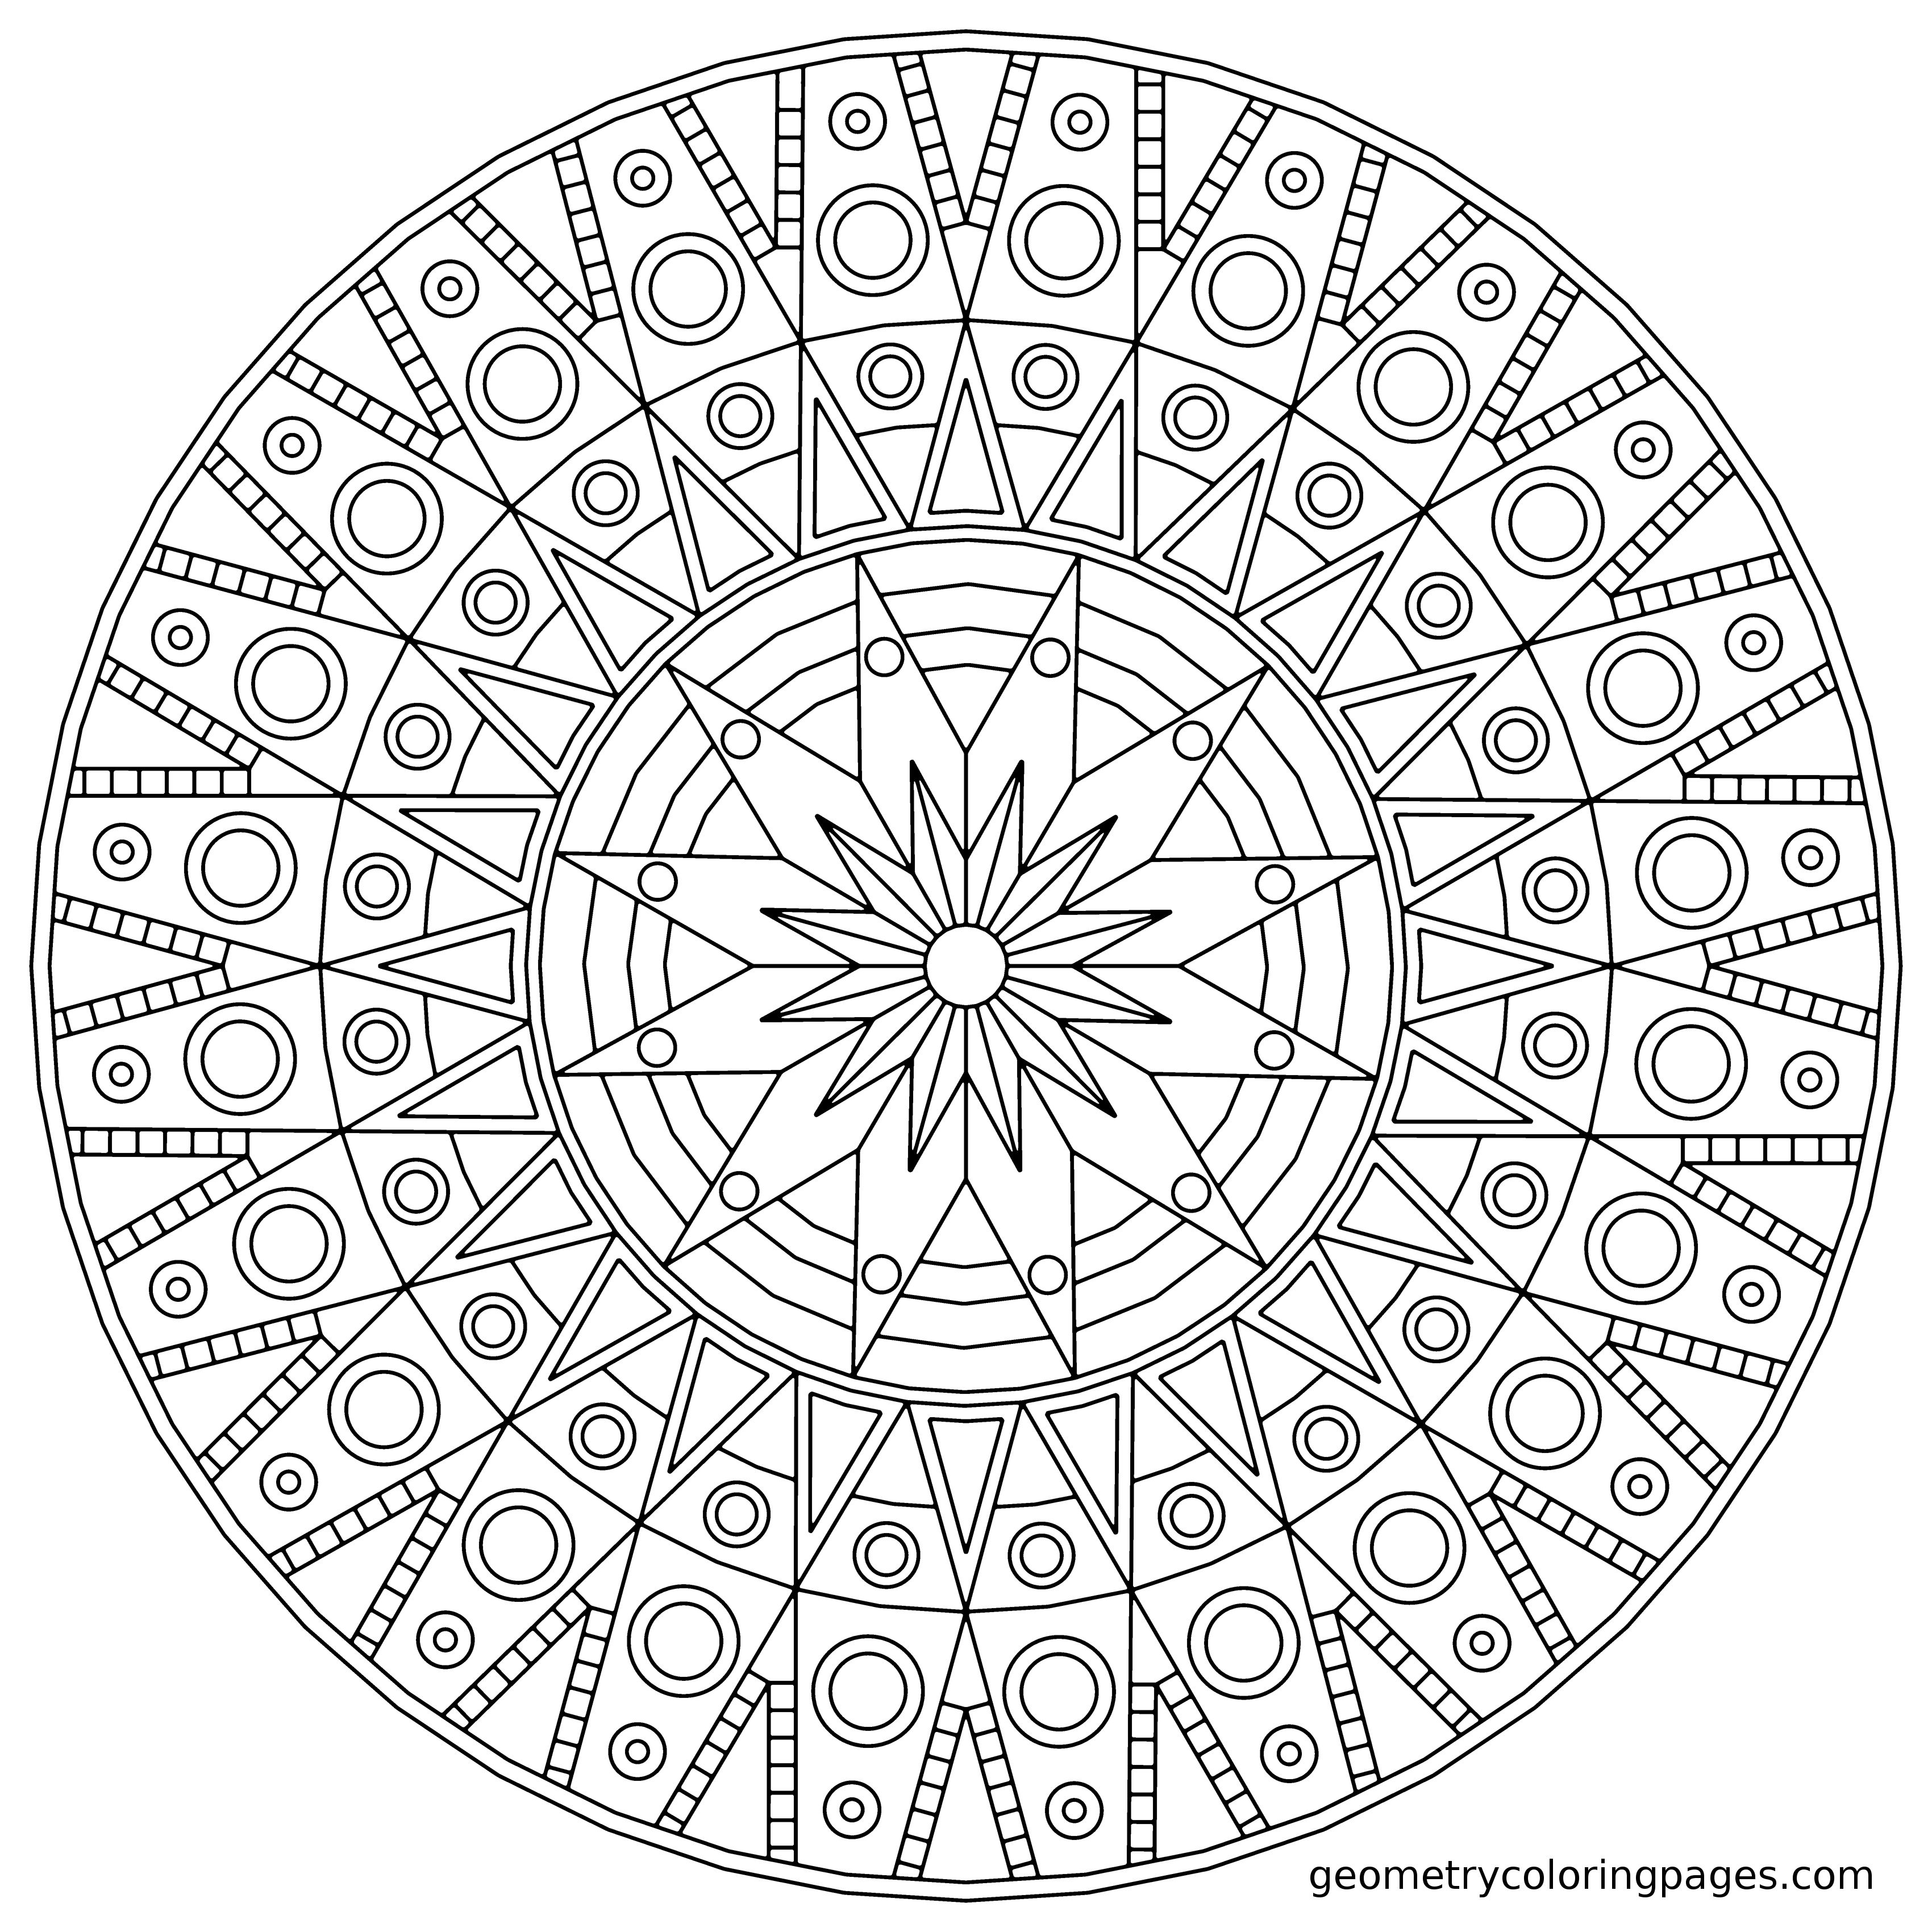 Mandala Coloring Page Sundial From Geometrycoloringpages